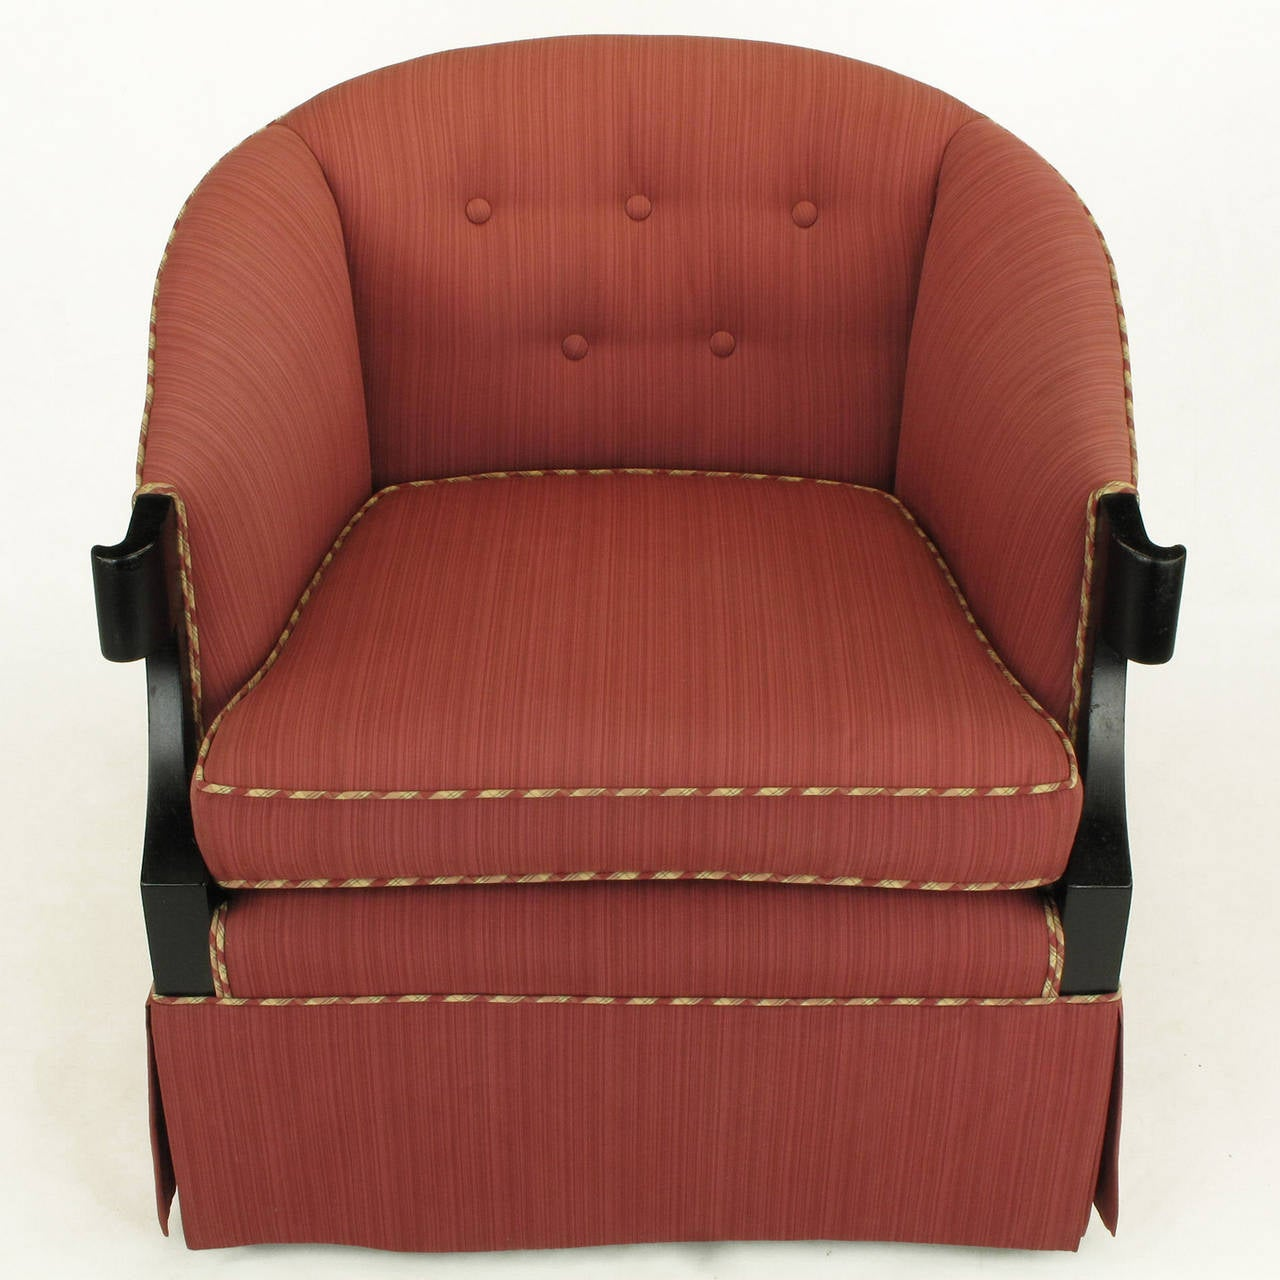 Pair of barrel back club chairs designed by Winsor White and William Millington for Baker's 1954 continental collection. Older reupholster in magenta silk striped with tan and magenta plaid welt in good condition with sun fade to a third of the